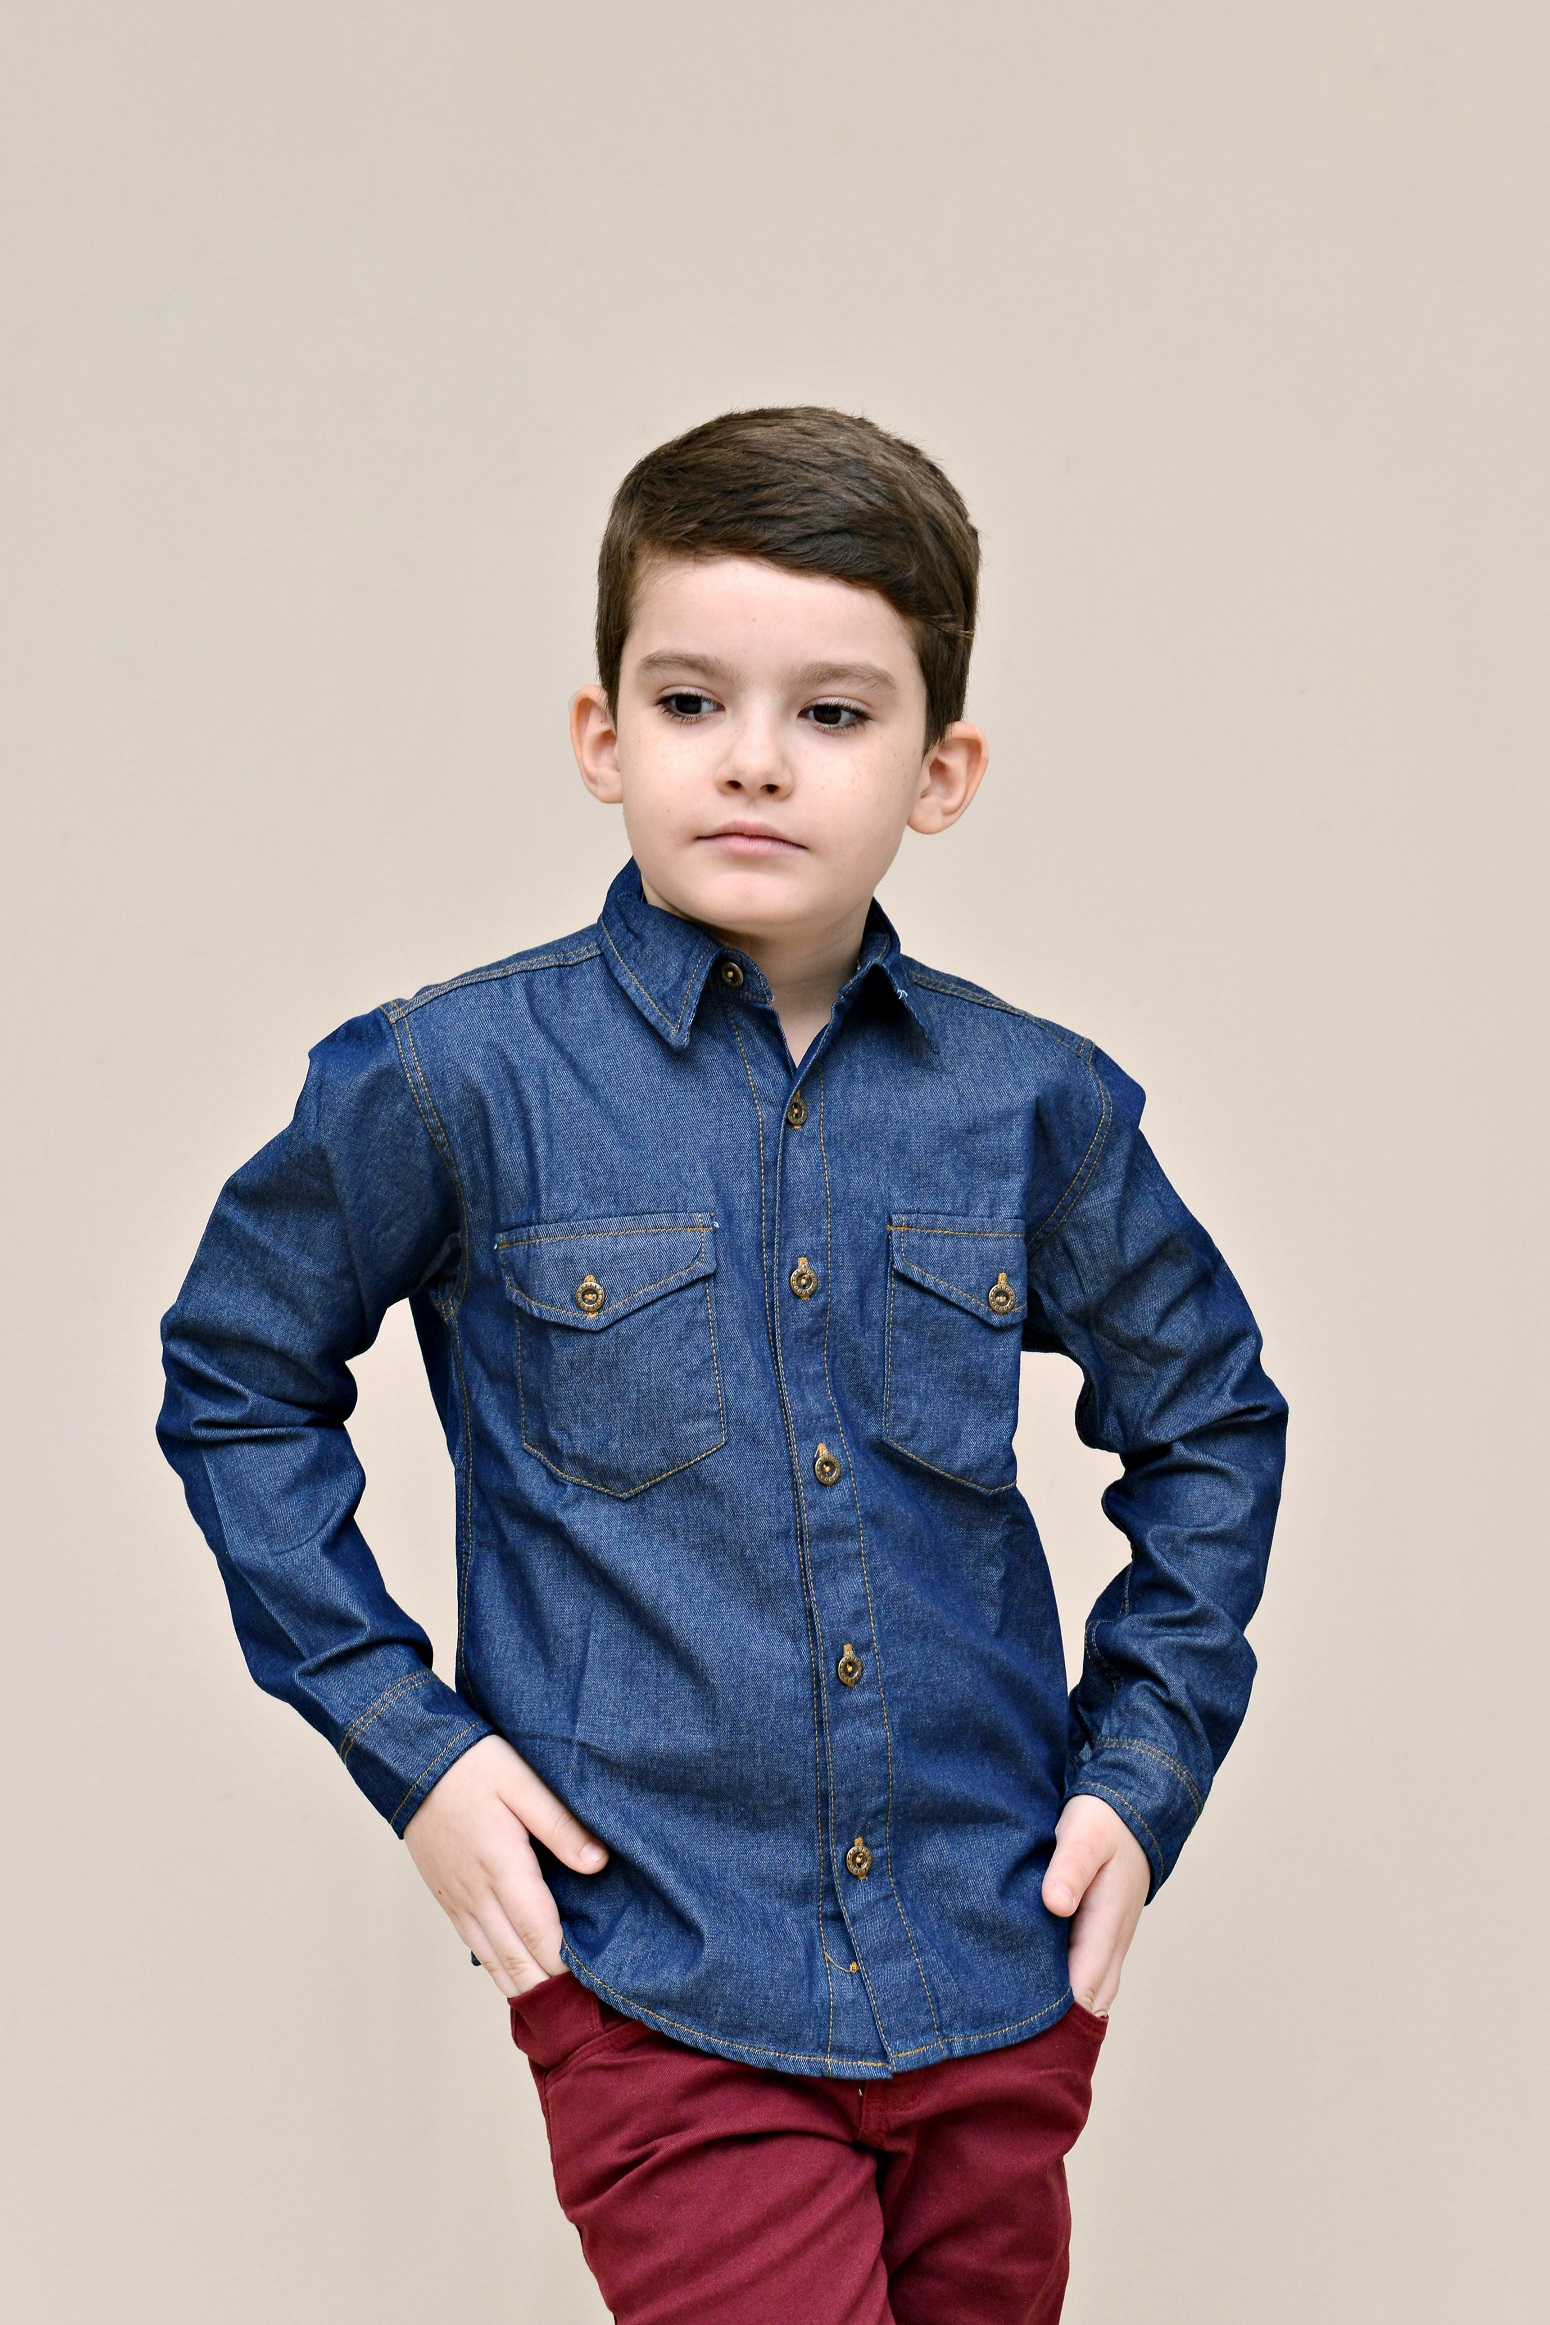 Camisa Jeans Masculina - Circuito Jeans